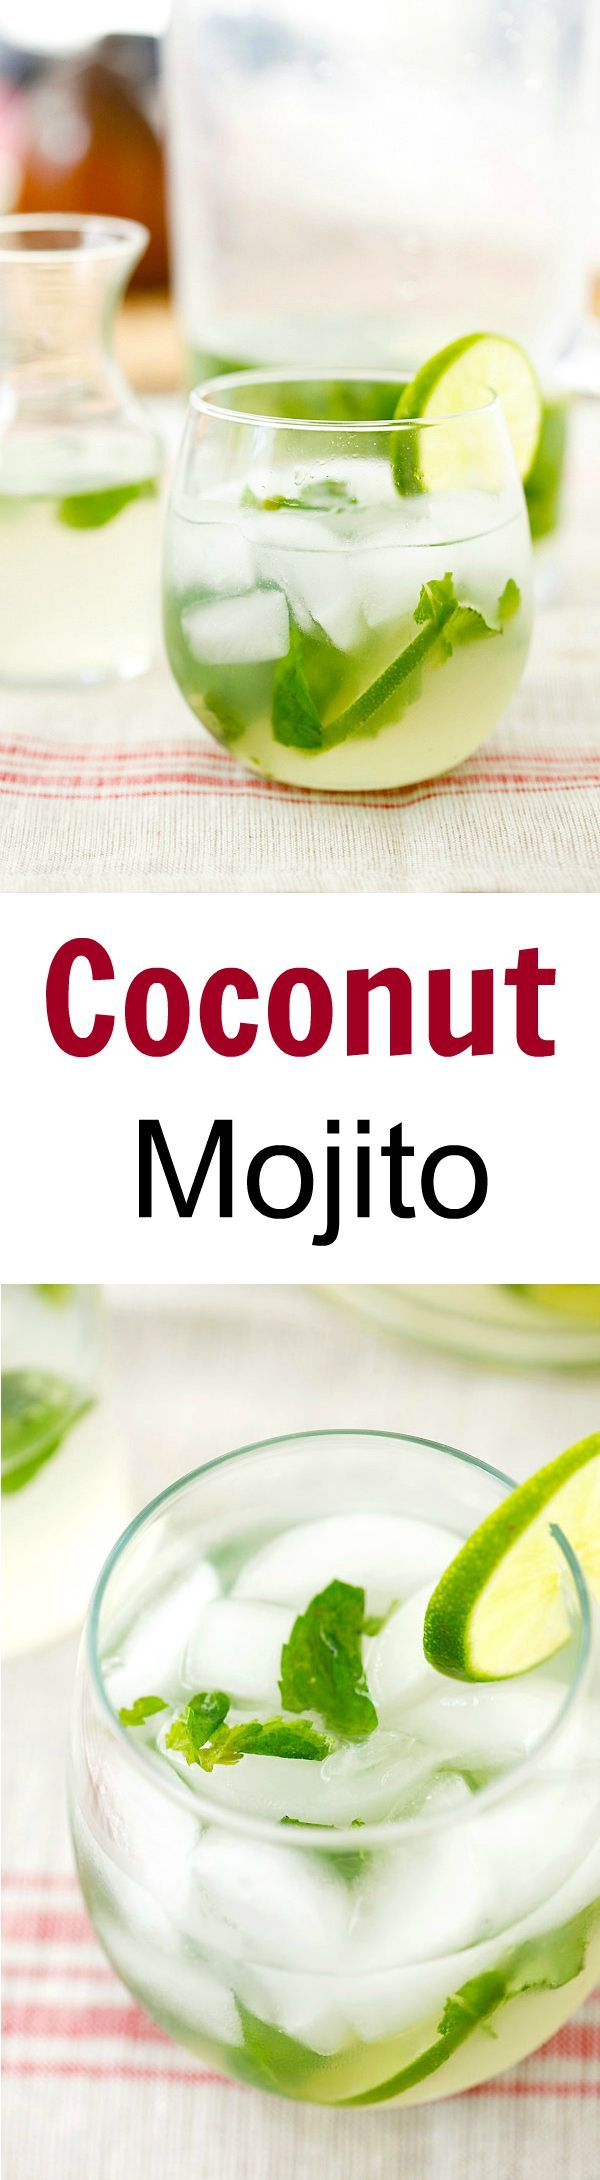 Coconut Mojito – Add tropical flavor to your regular mojito with this easy, healthy and refreshing coconut mojito recipe that takes only 10 mins to make! | rasamalaysia.com